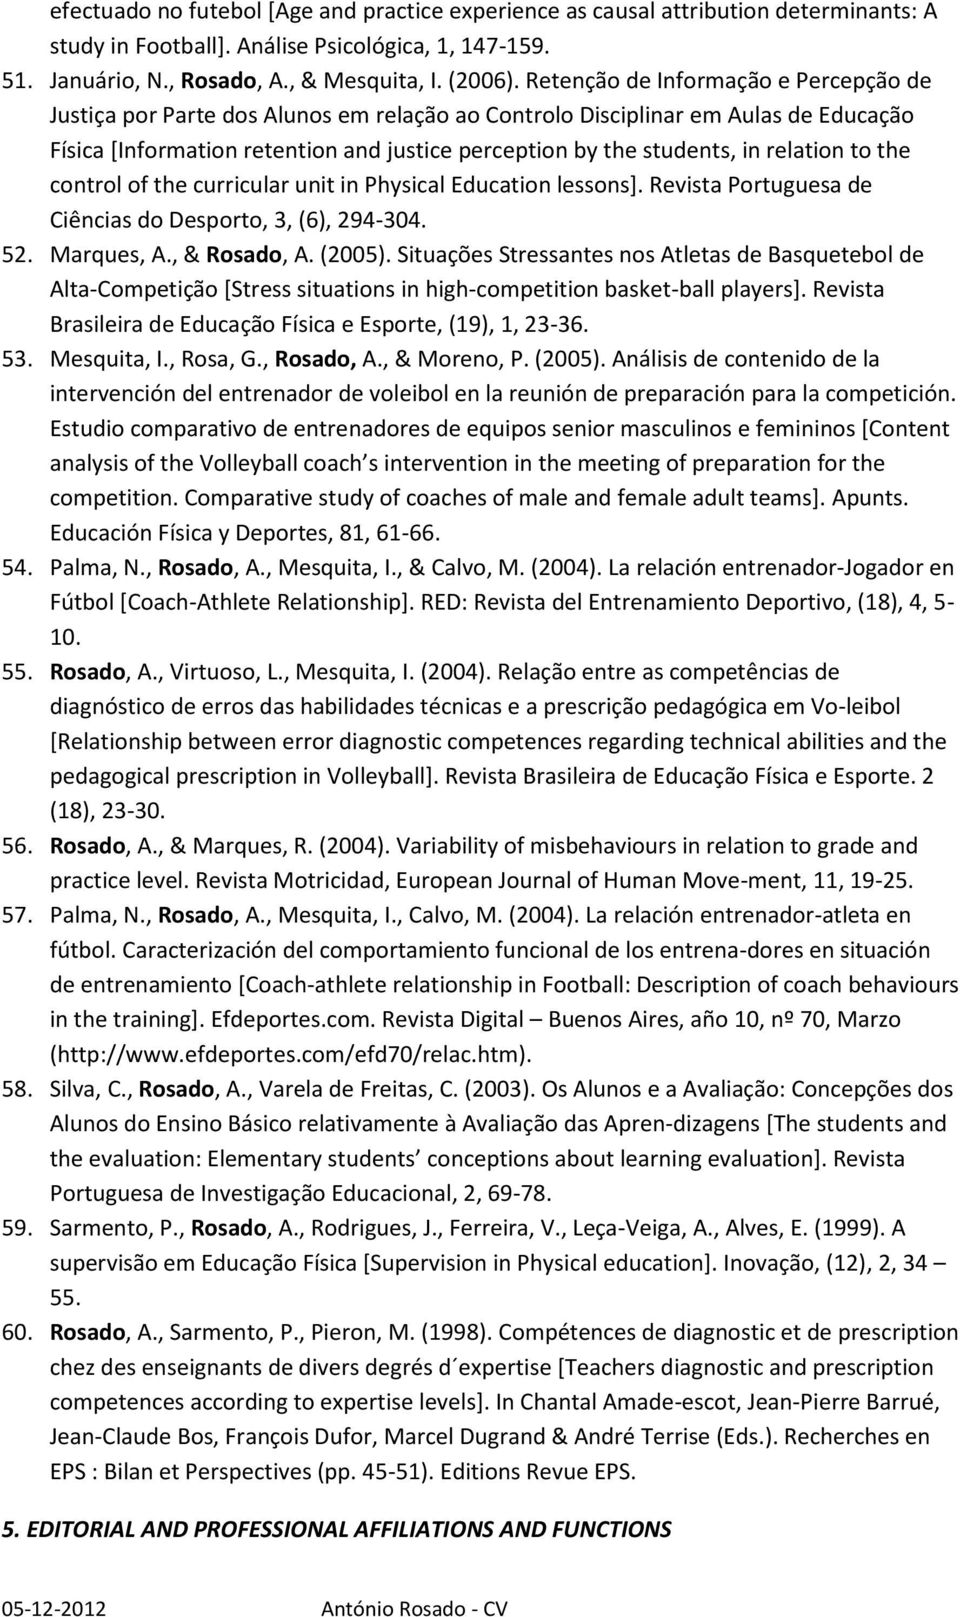 relation to the control of the curricular unit in Physical Education lessons]. Revista Portuguesa de Ciências do Desporto, 3, (6), 294-304. 52. Marques, A., & Rosado, A. (2005).